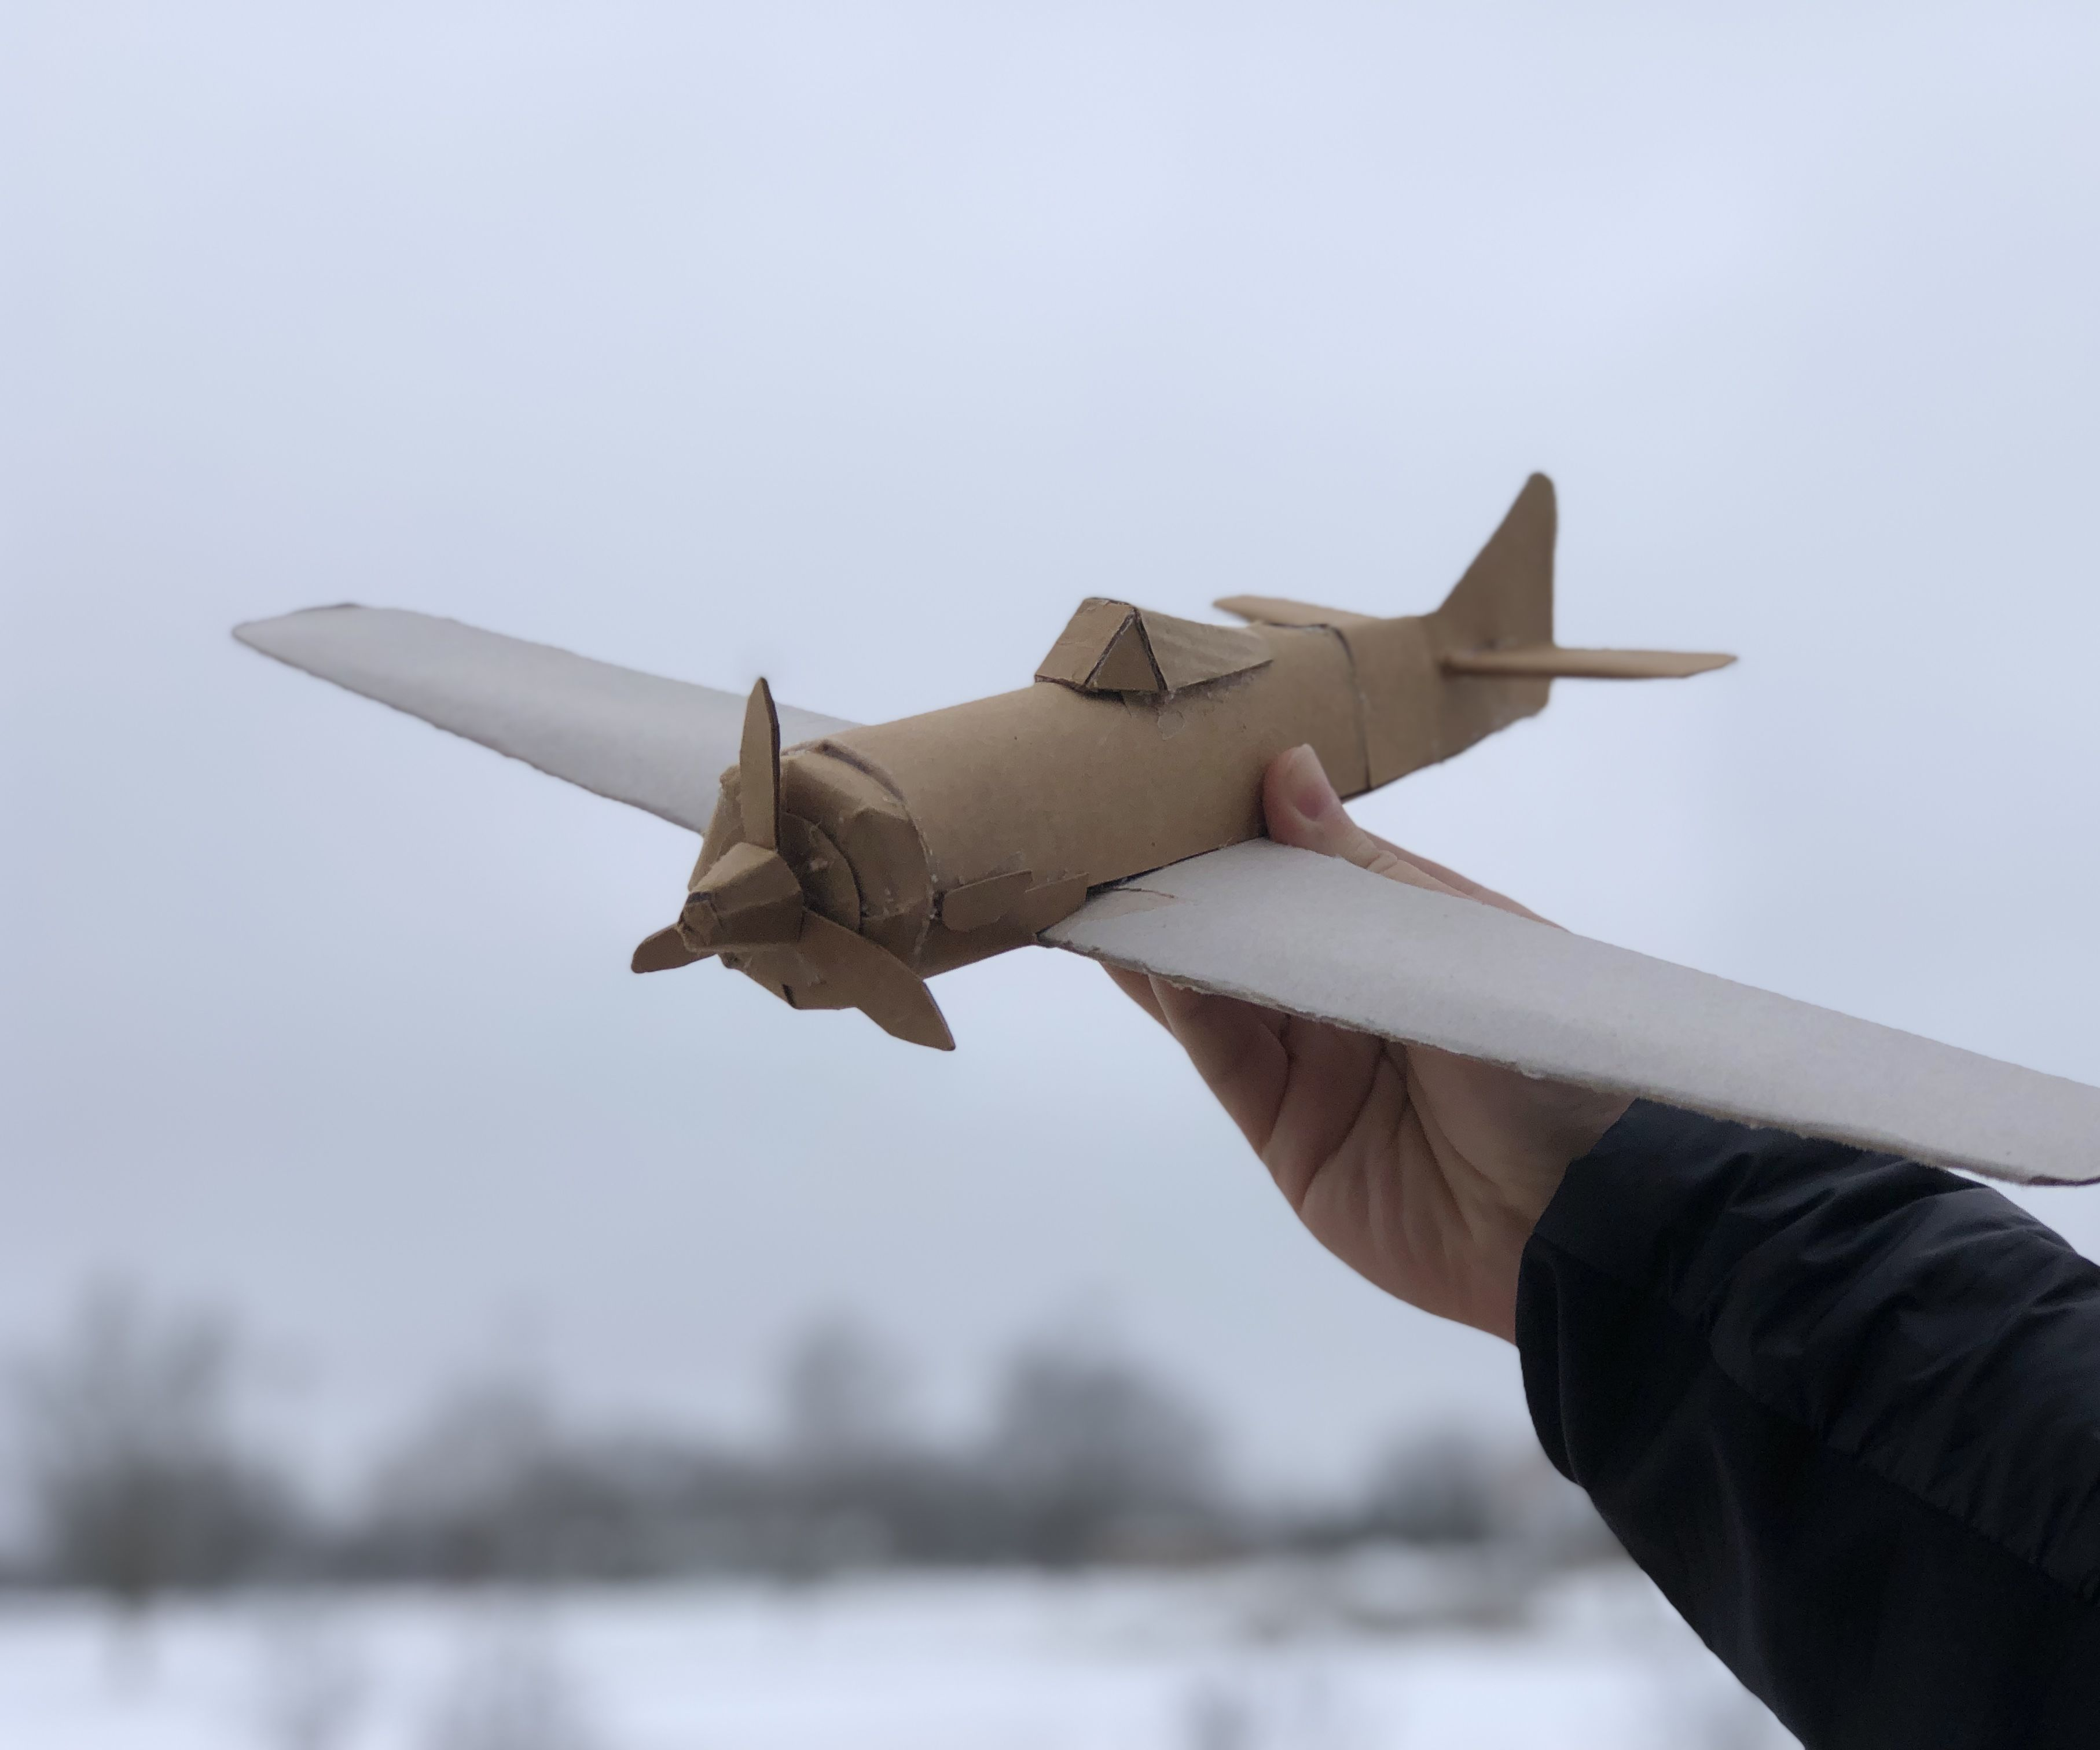 Easy Cardboard Model Airplane: 12 Steps (with Pictures)